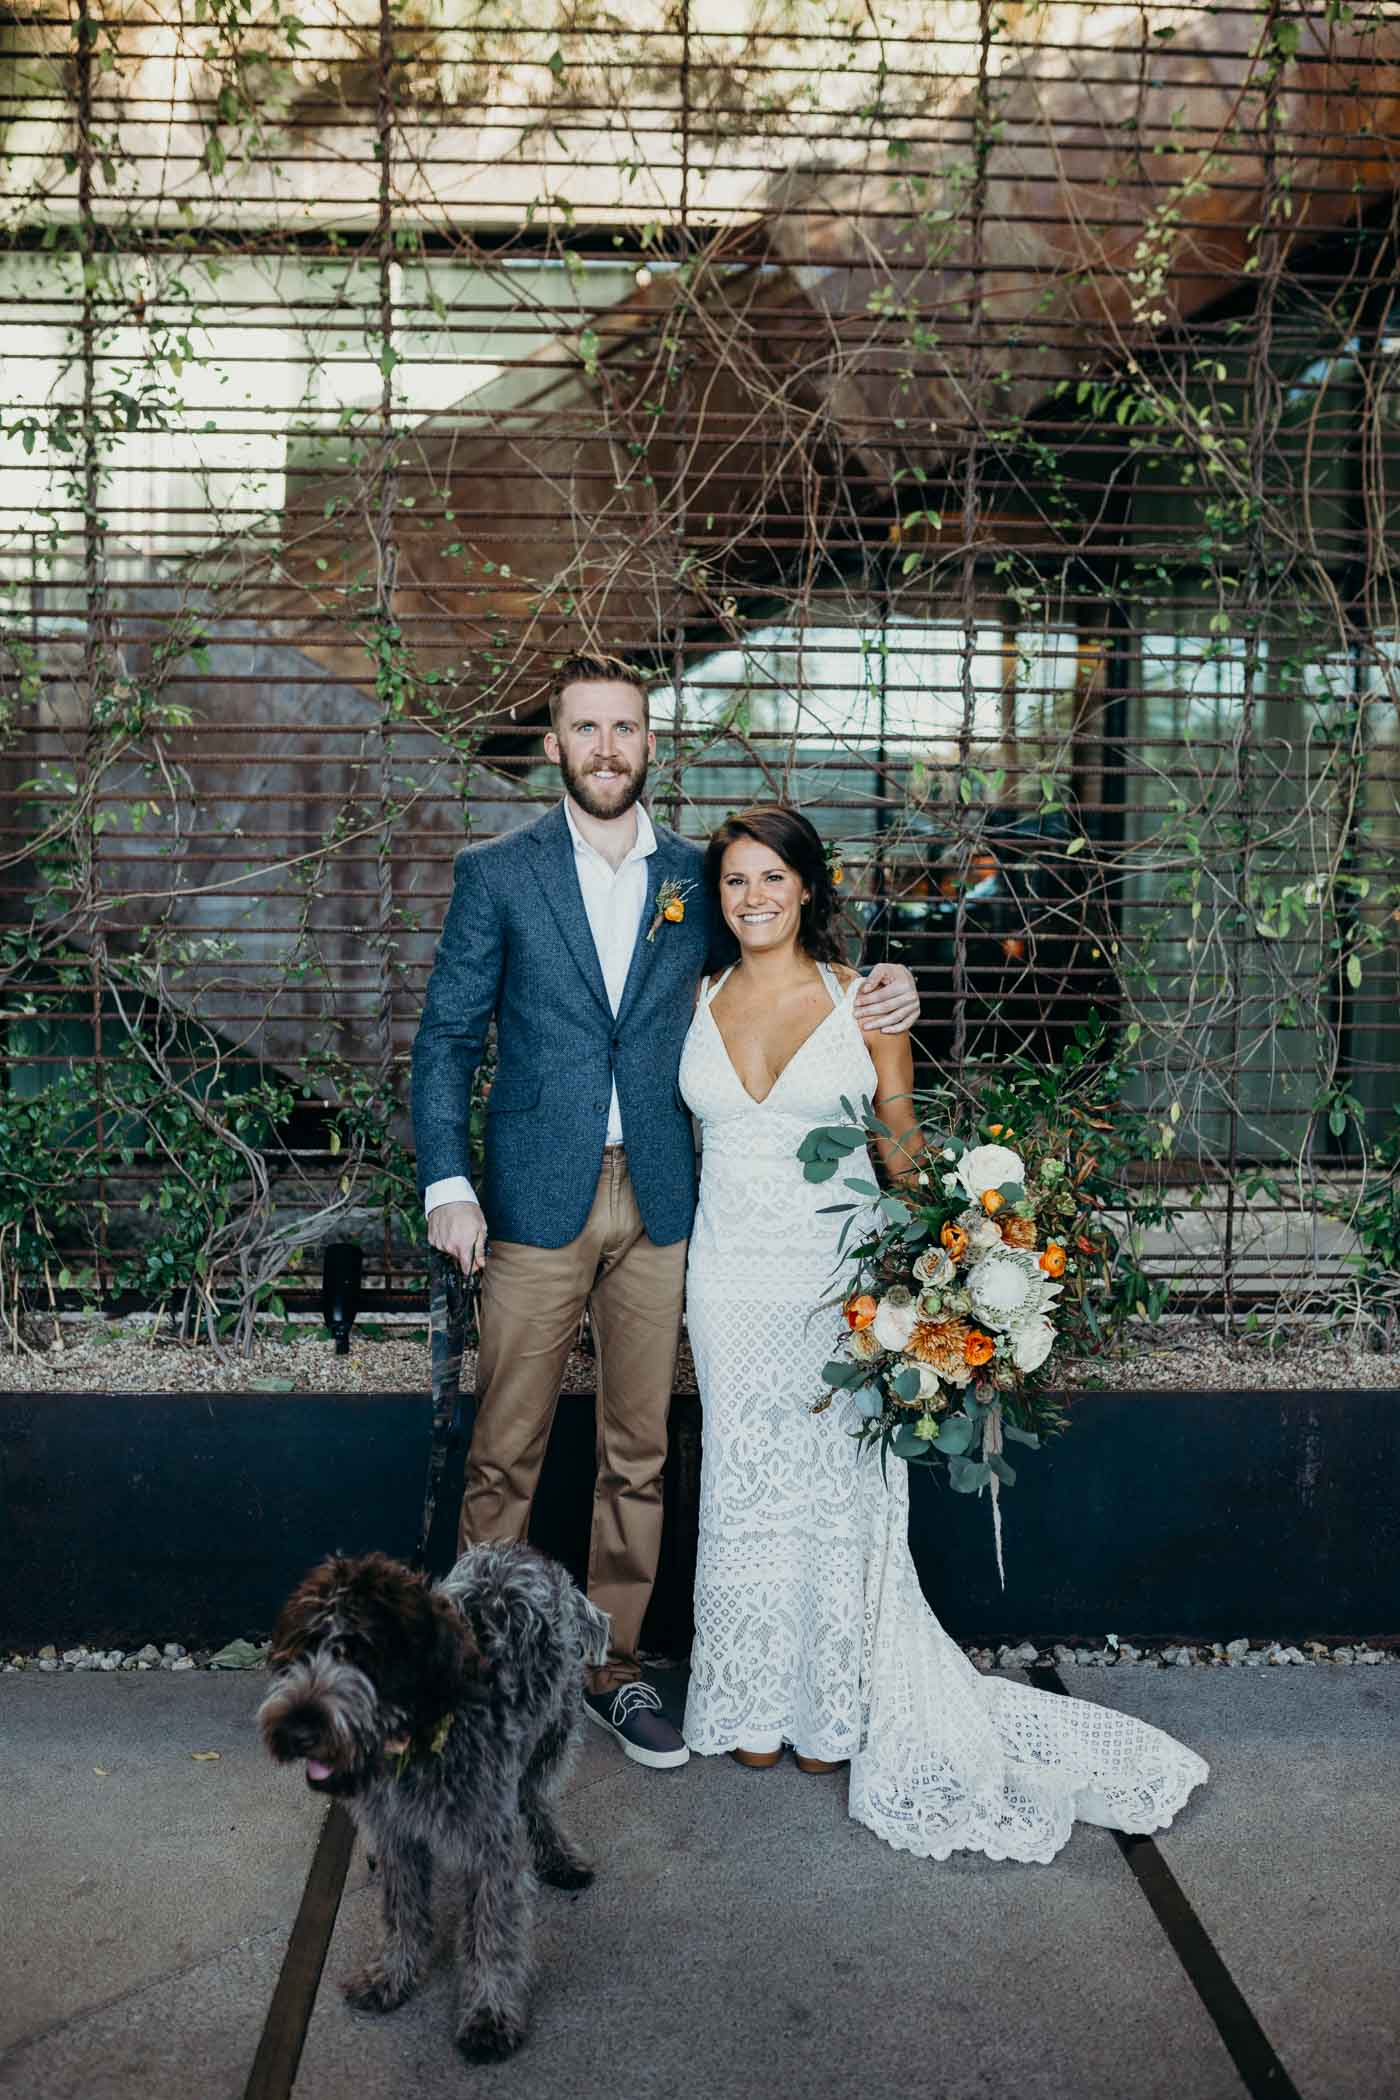 Bride and groom and their dog taking a picture in front of some greenery before they get married. Bride is wearing boho dress and the groom is wearing khakis and a jacket.